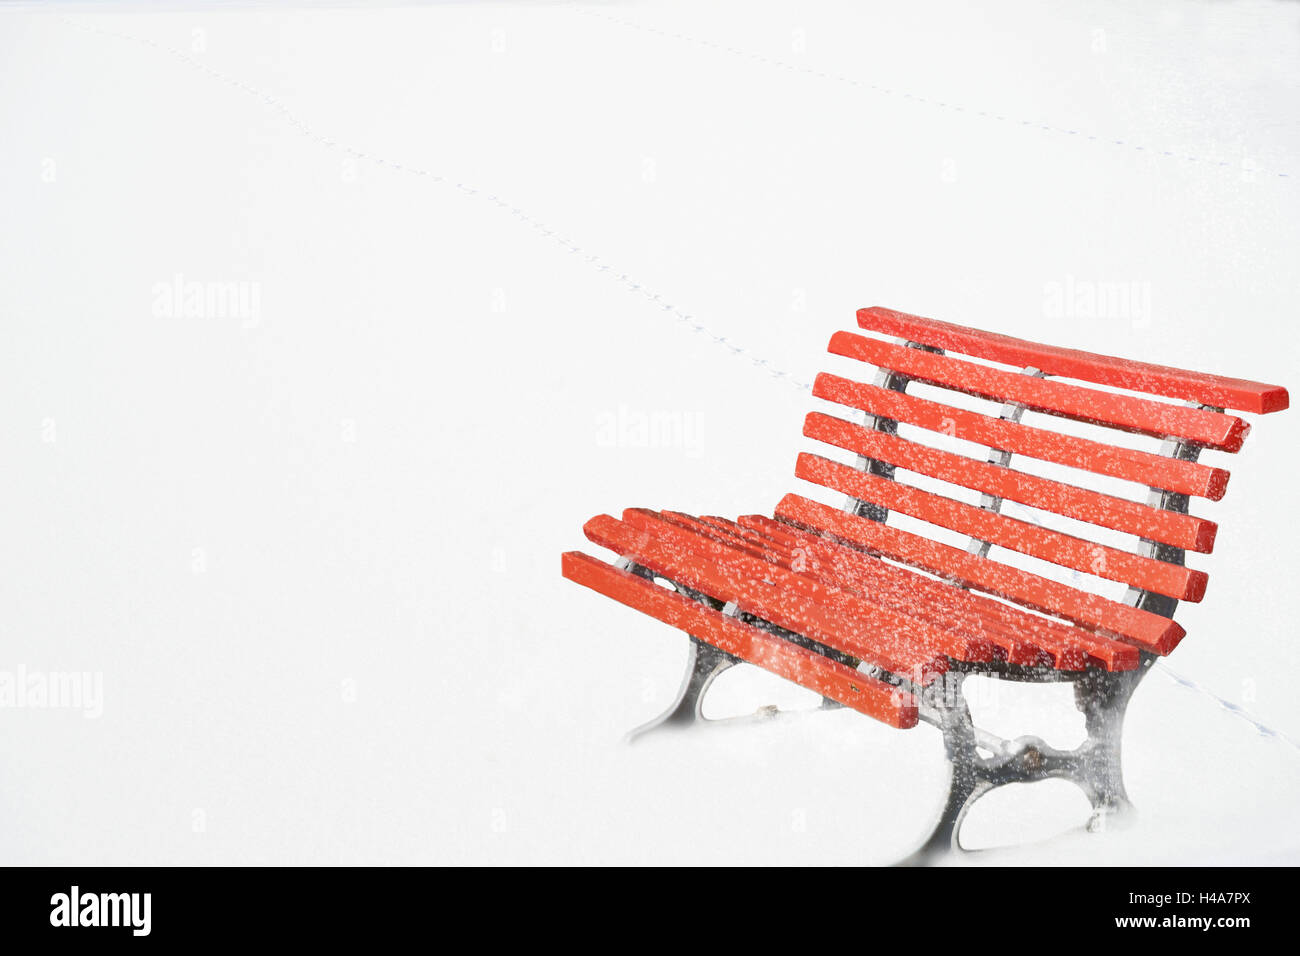 Red saddle, snow, winter, bank, garden bench, park-bench, red, blank, nobody, sit rest, rest, conception, unoccupied, - Stock Image